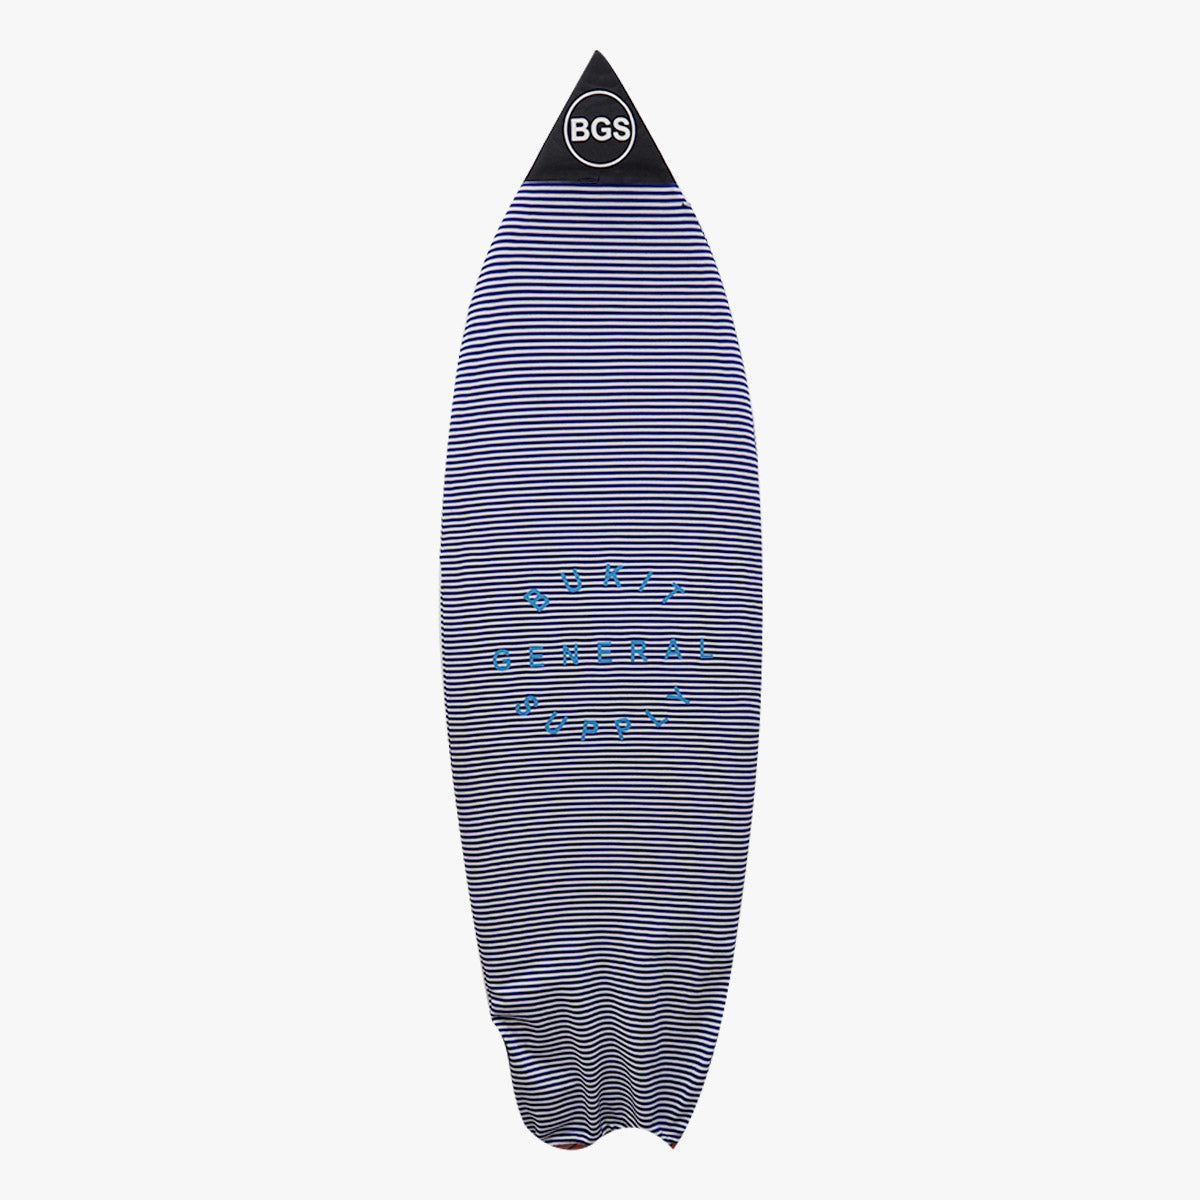 bgs board sock blue